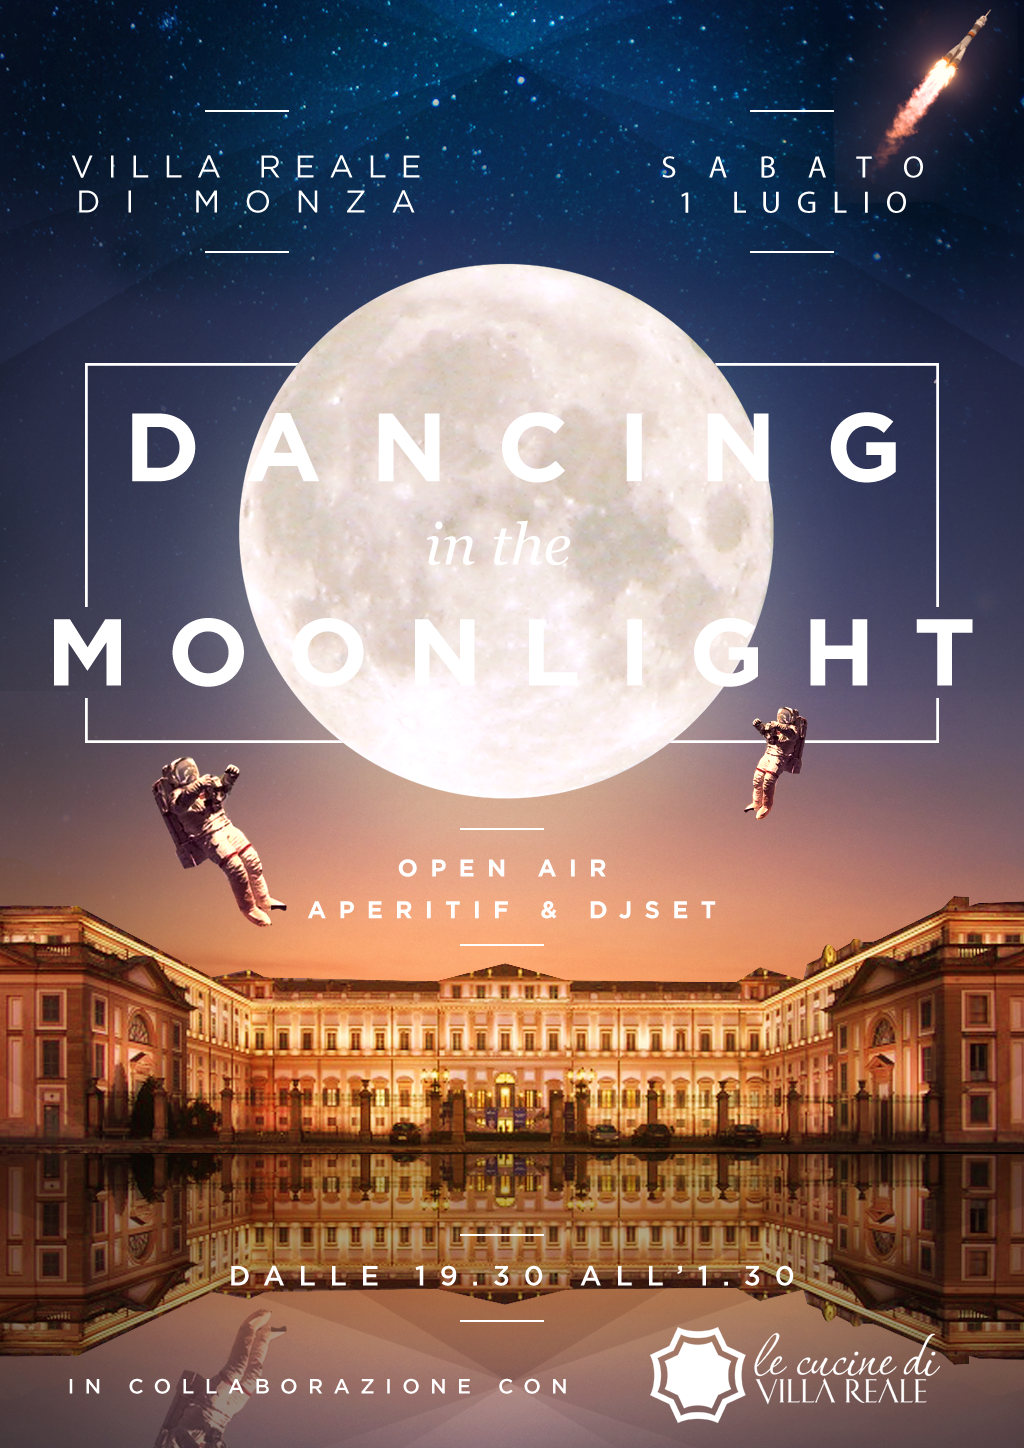 MONZA DANCING IN THE MOONLIGHT VILLA REALE youparti party milano dance night